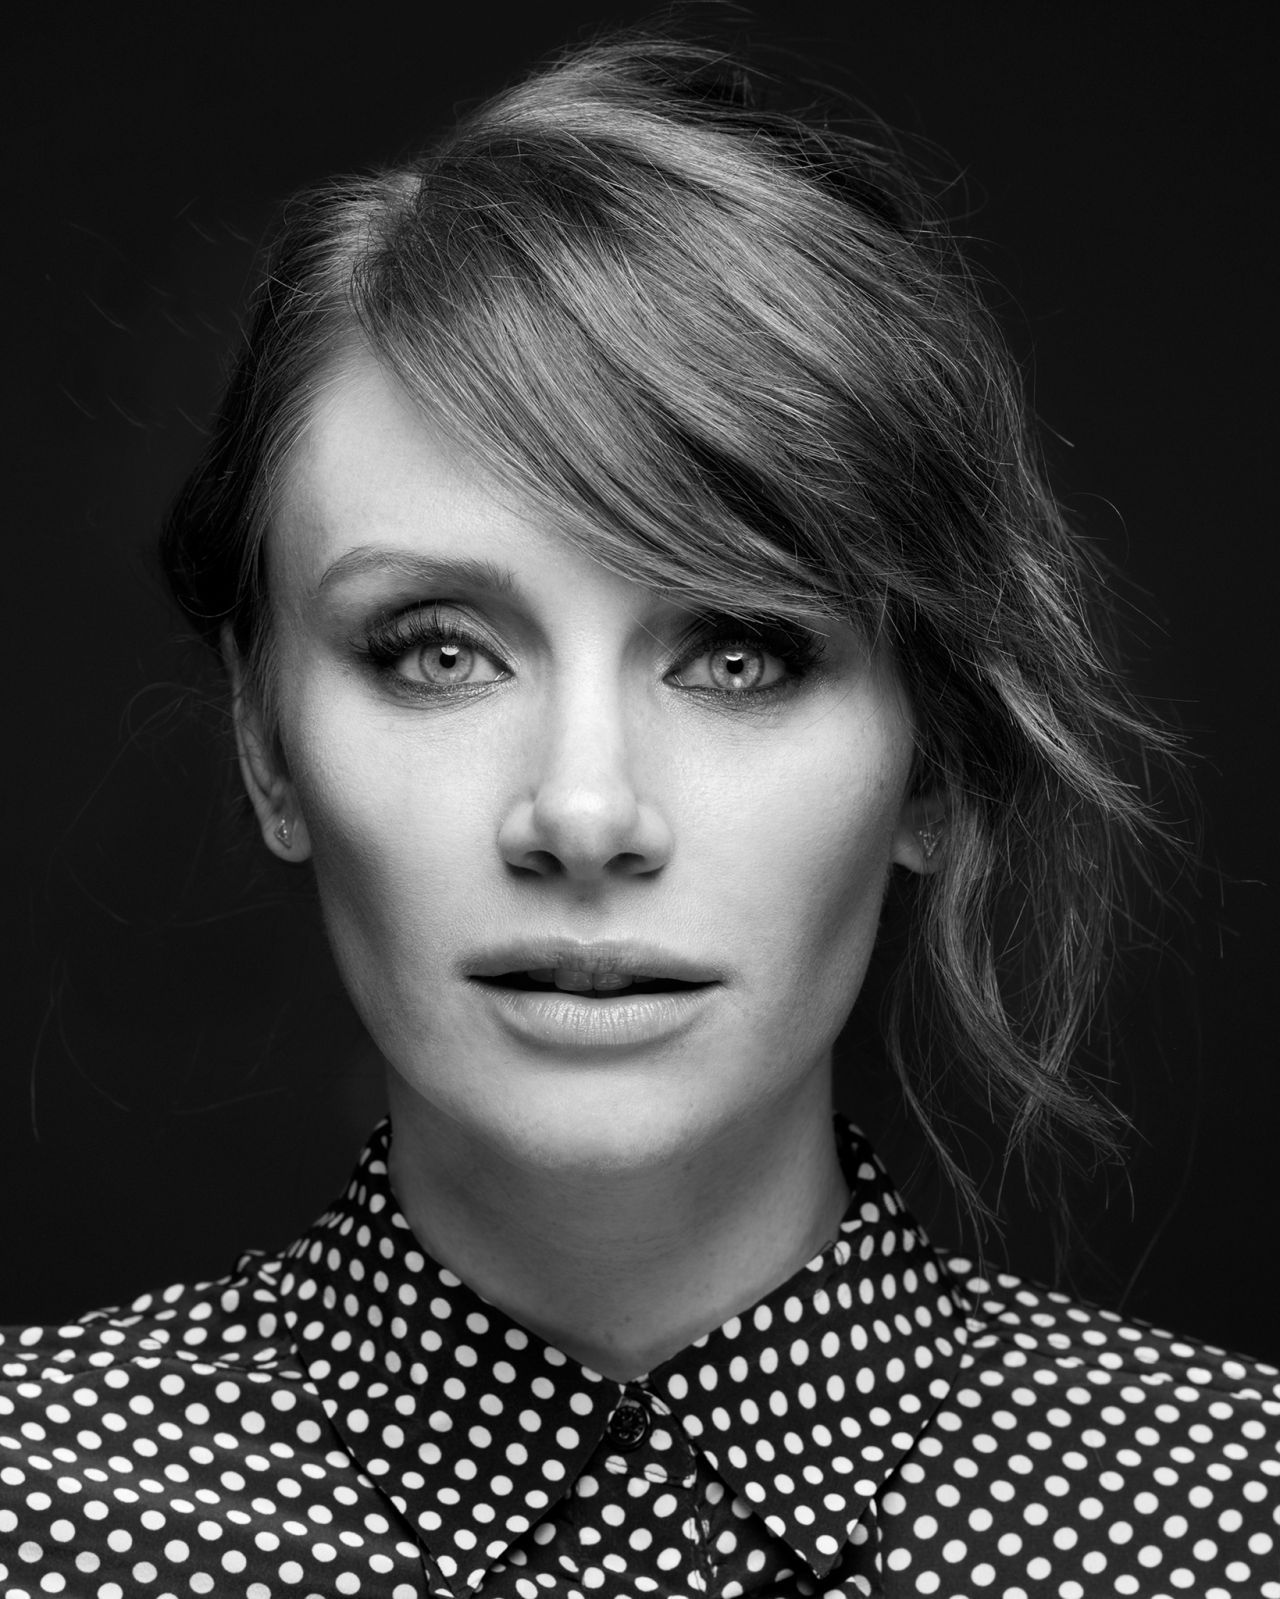 Bryce dallas howard bryce dallas howard in pinterest